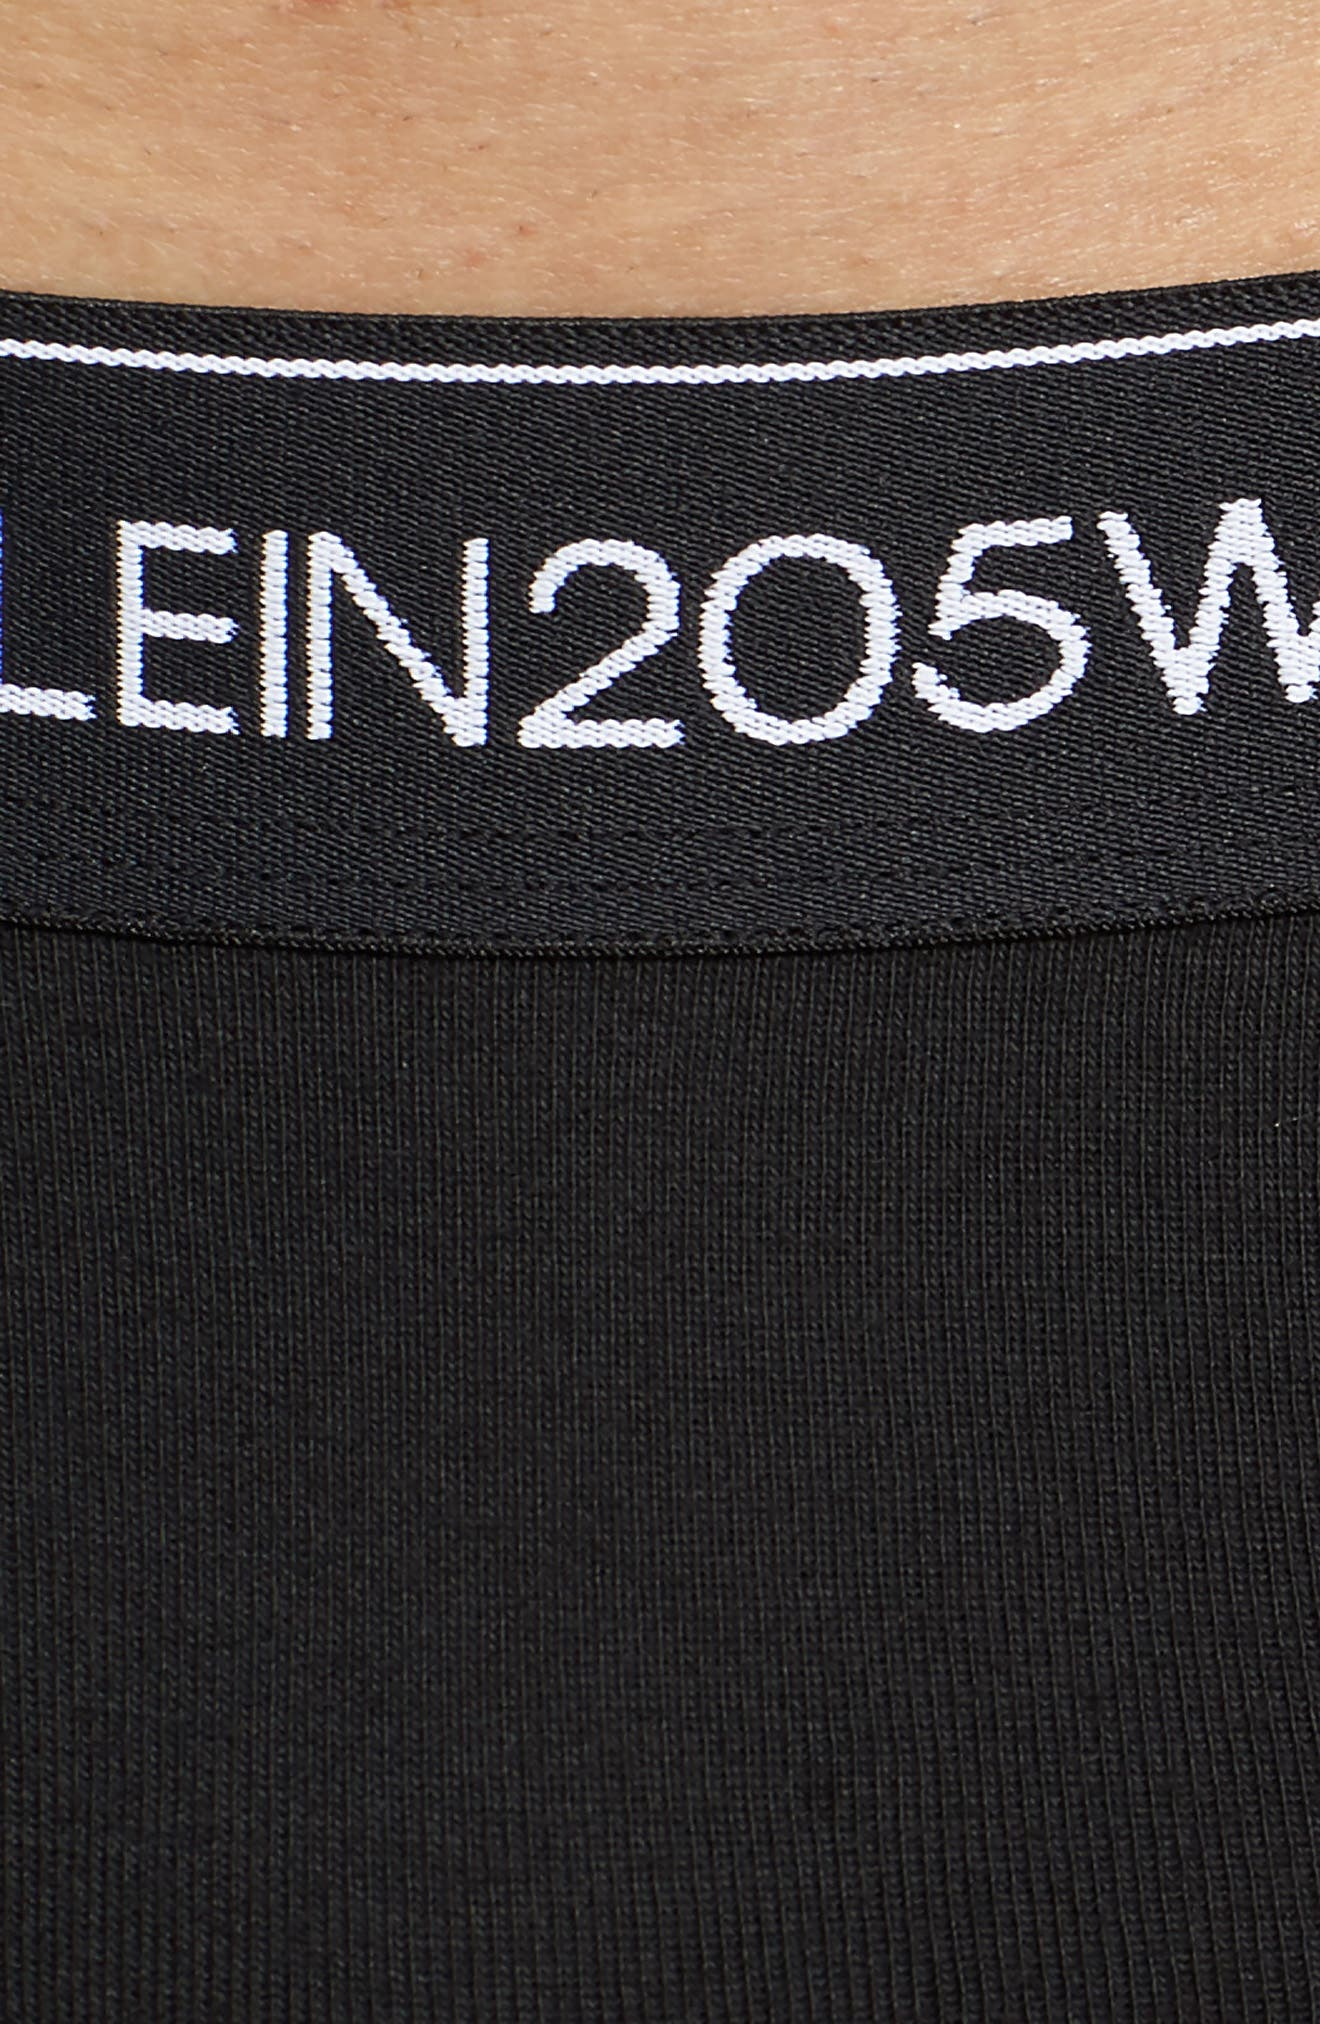 Collection Cotton Briefs,                             Alternate thumbnail 4, color,                             BLACK